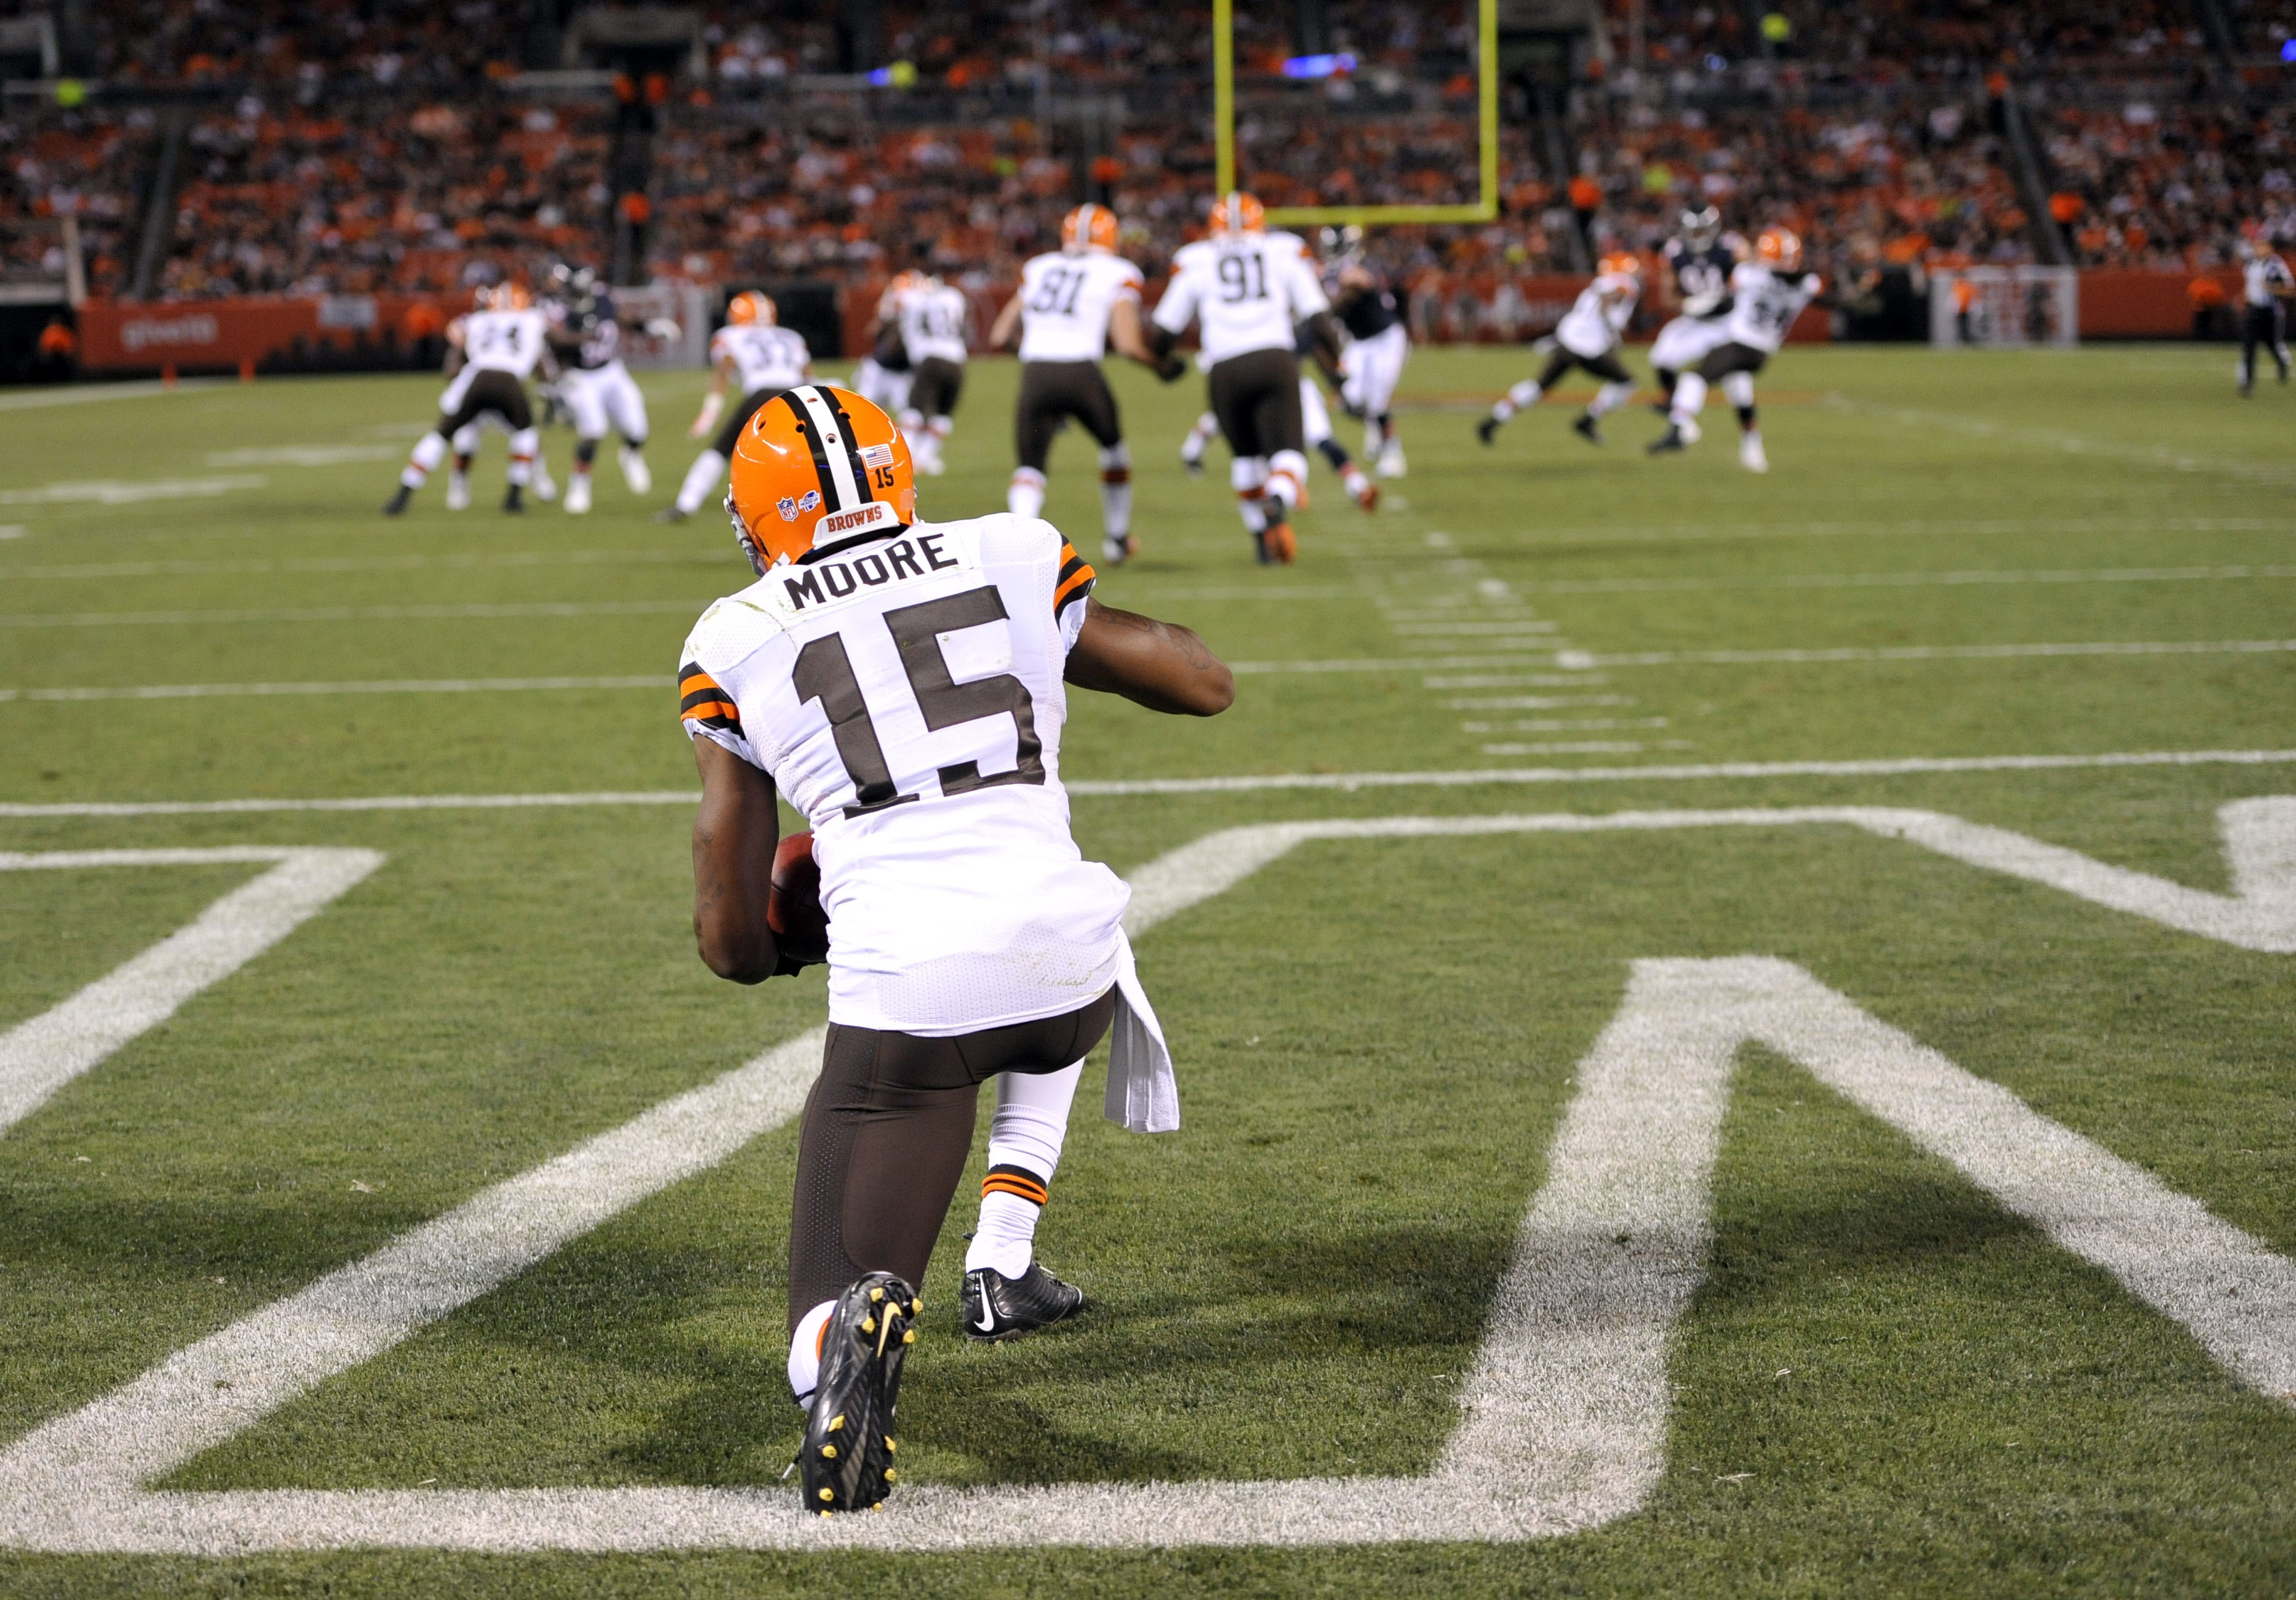 FILE - In this Aug. 28, 2014, file photo, Cleveland Browns' Marlon Moore (15) takes a knee for a touchback in the second quarter of a preseason NFL football game against the Chicago Bears in Cleveland. Exhibition games serve a purpose for people such as o